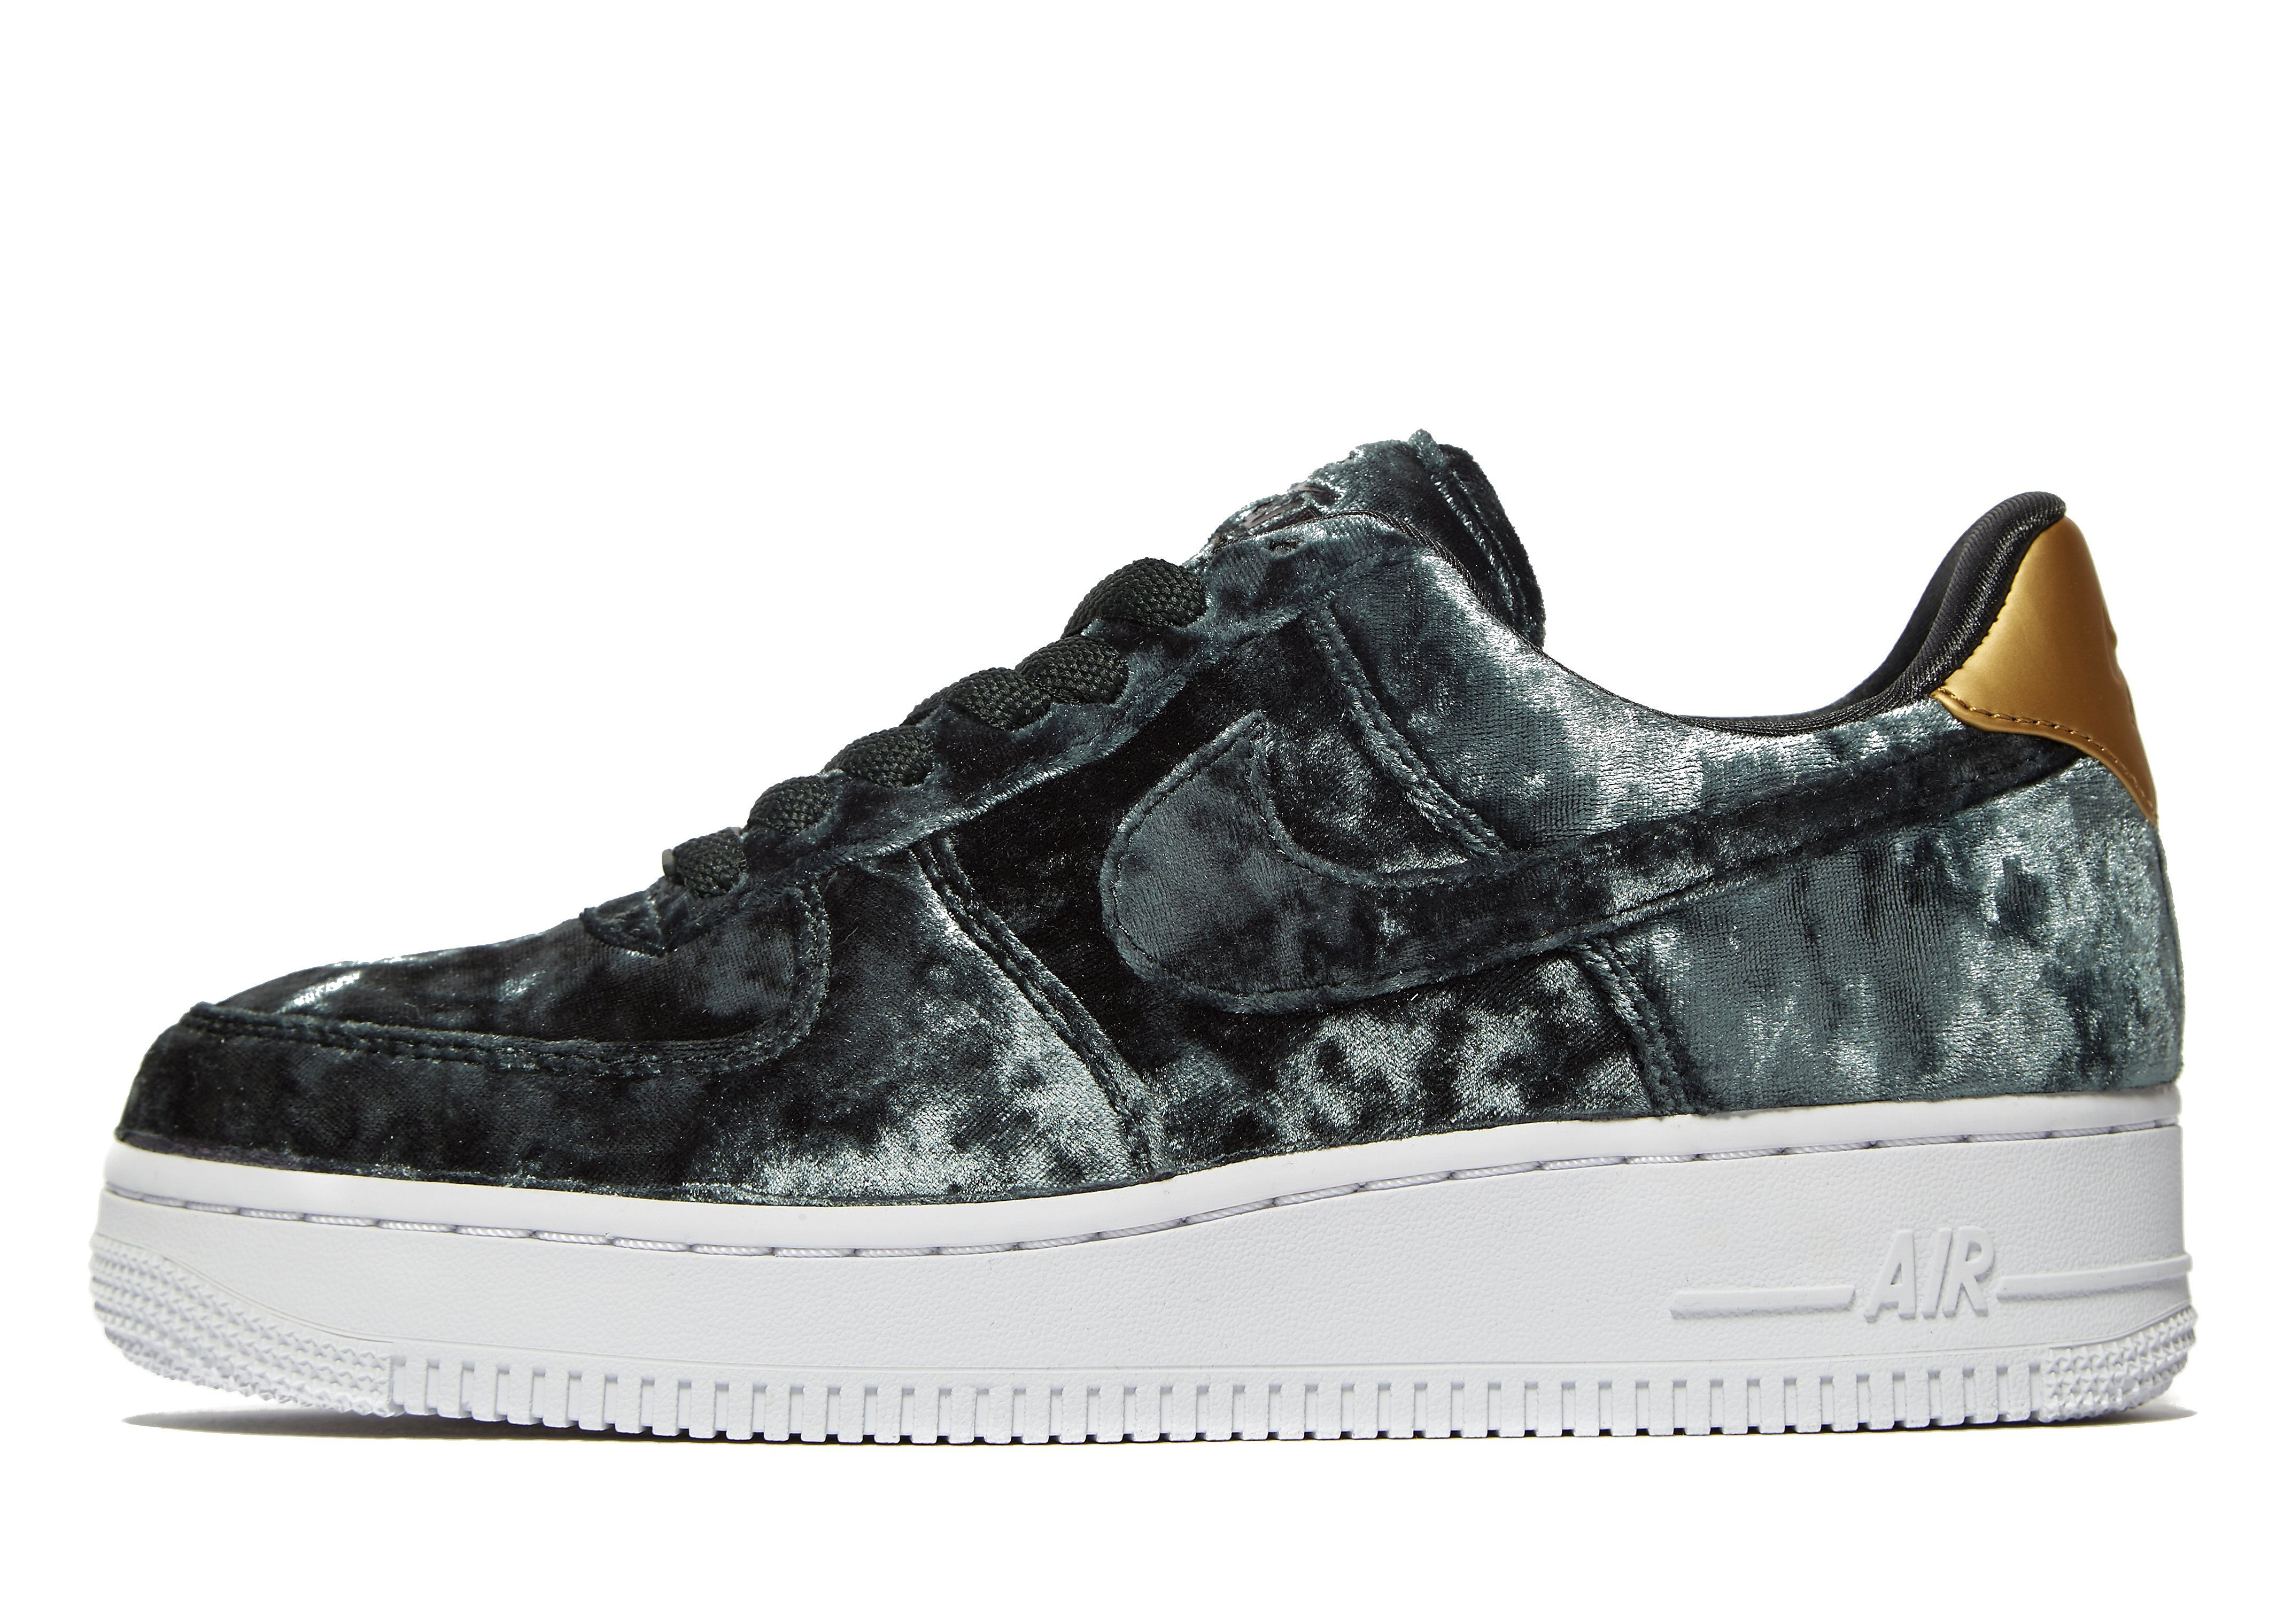 Nike Air Force 1 Velvet Women's